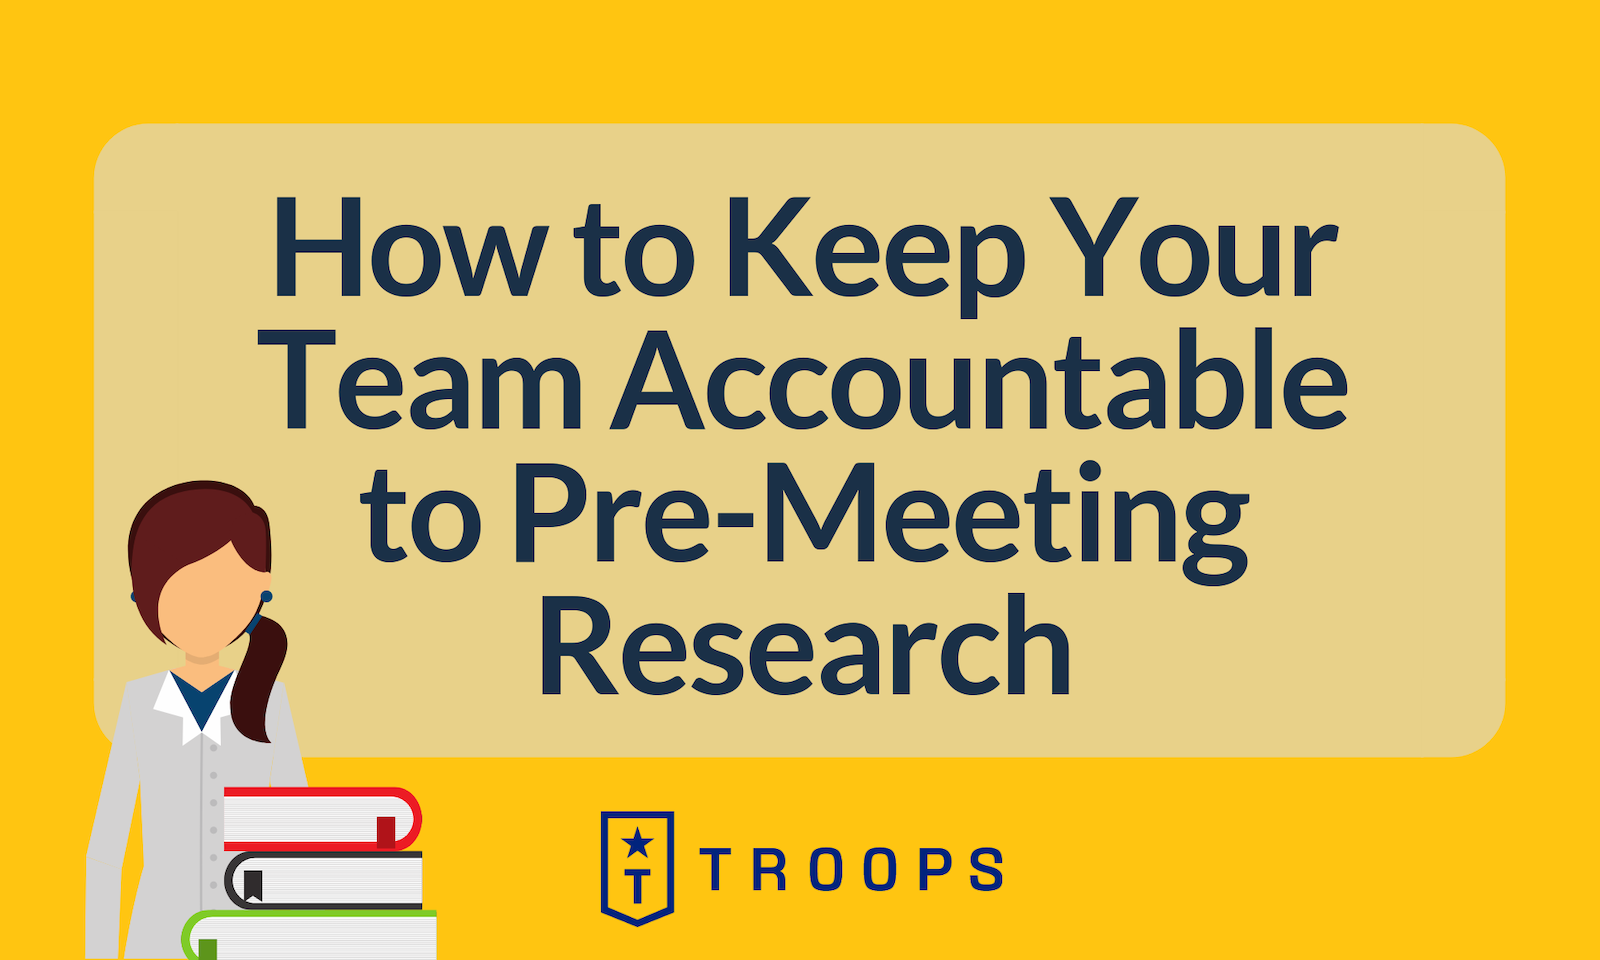 How to Keep Your Team Accountable to Pre-Meeting Research